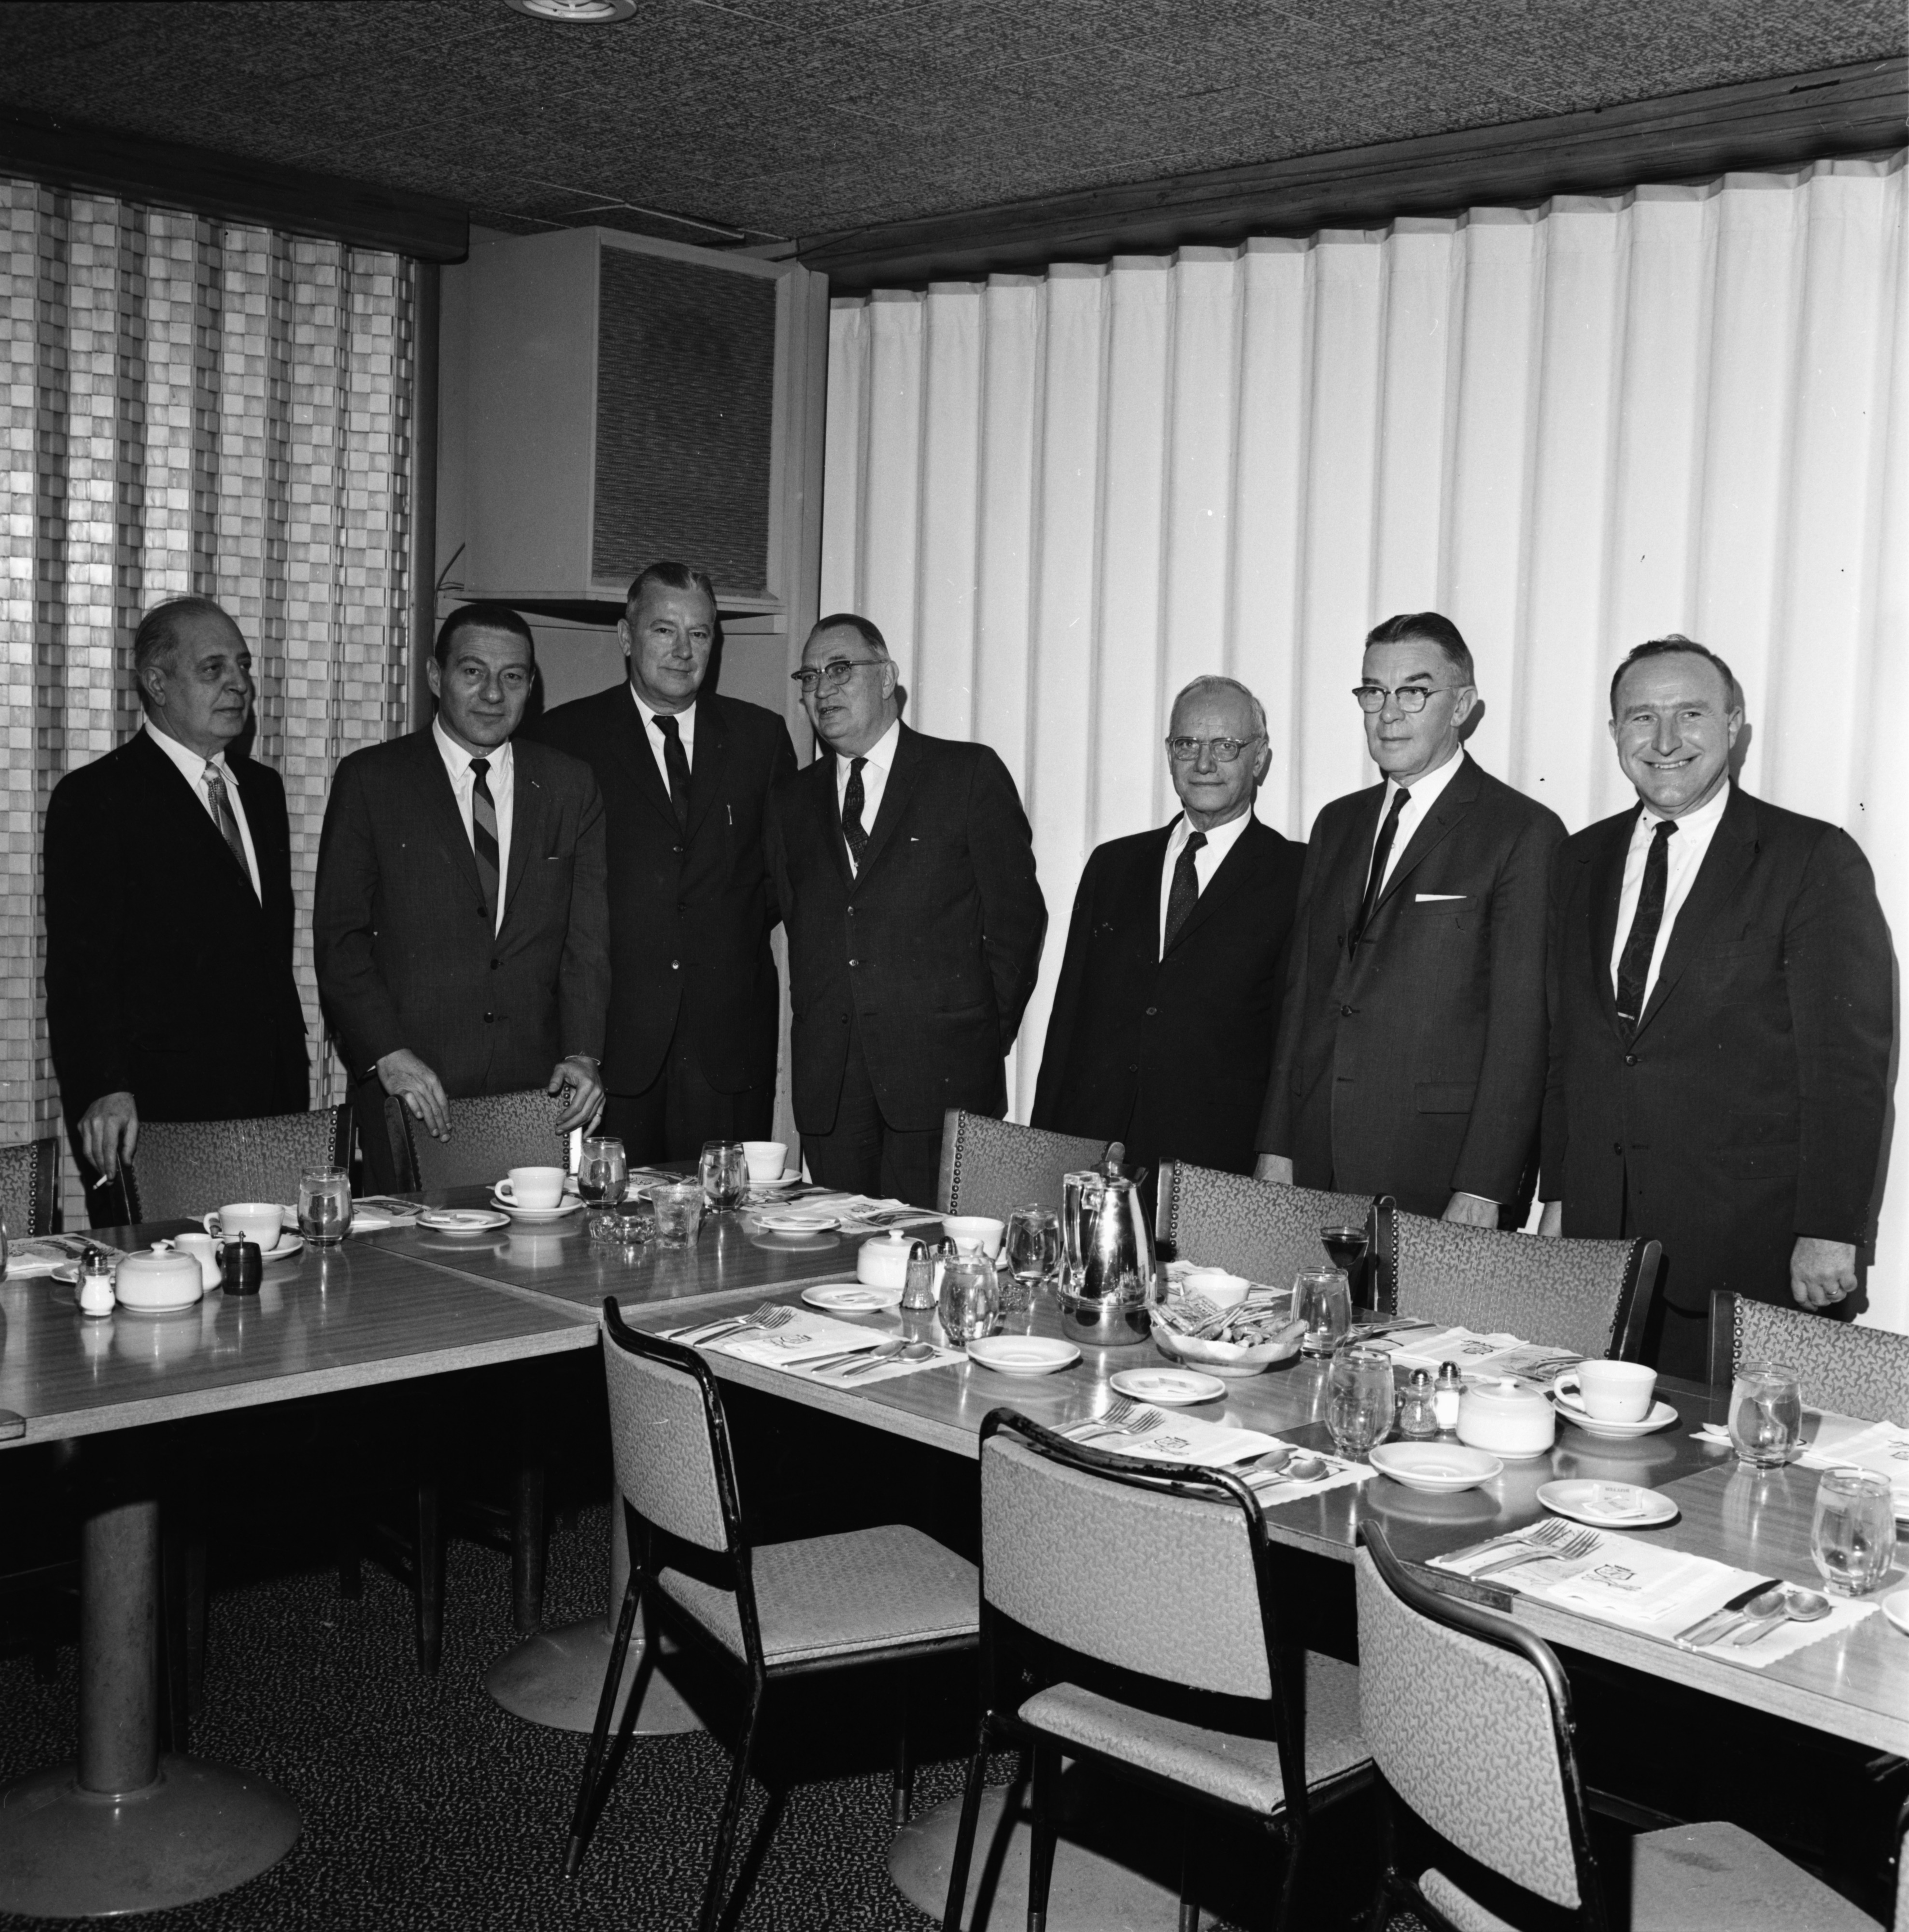 Hotel Developers and supporters discuss an 11-story $3,000,000 hotel to be built at E. Huron and S. Fourth Avenue, December 1963 image